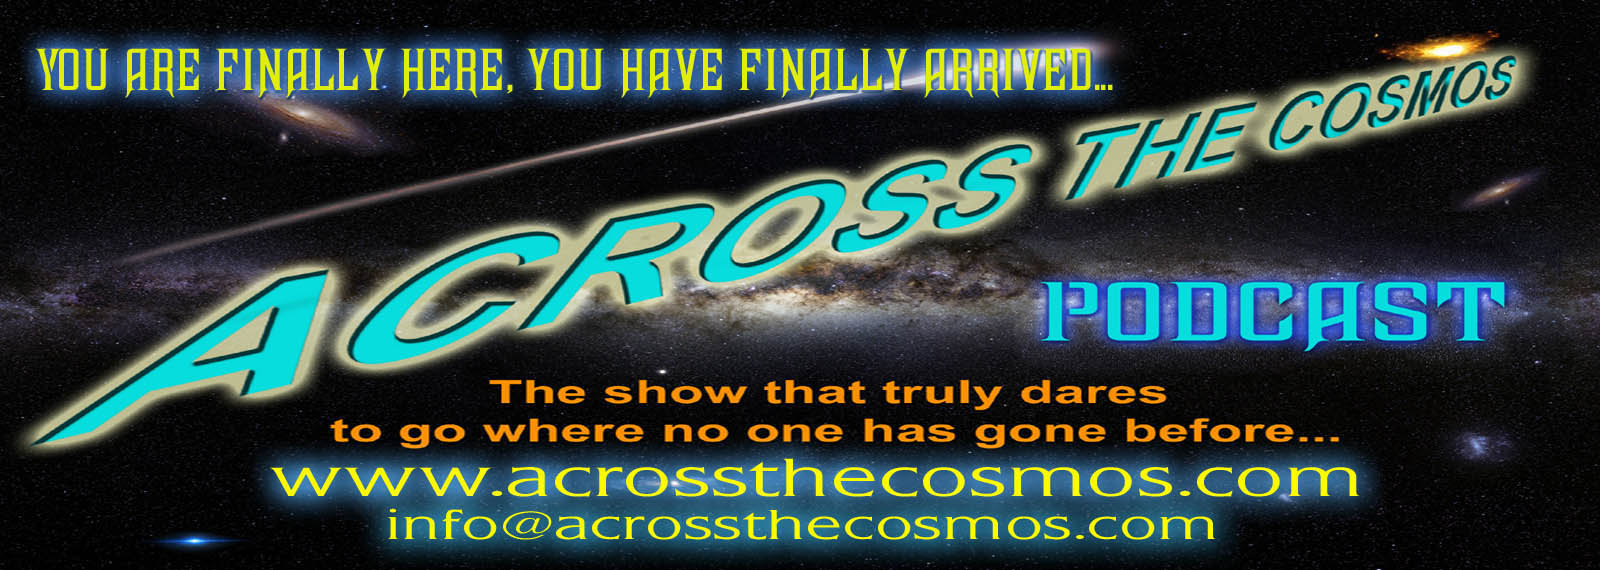 Across The Cosmos Ad Banner.